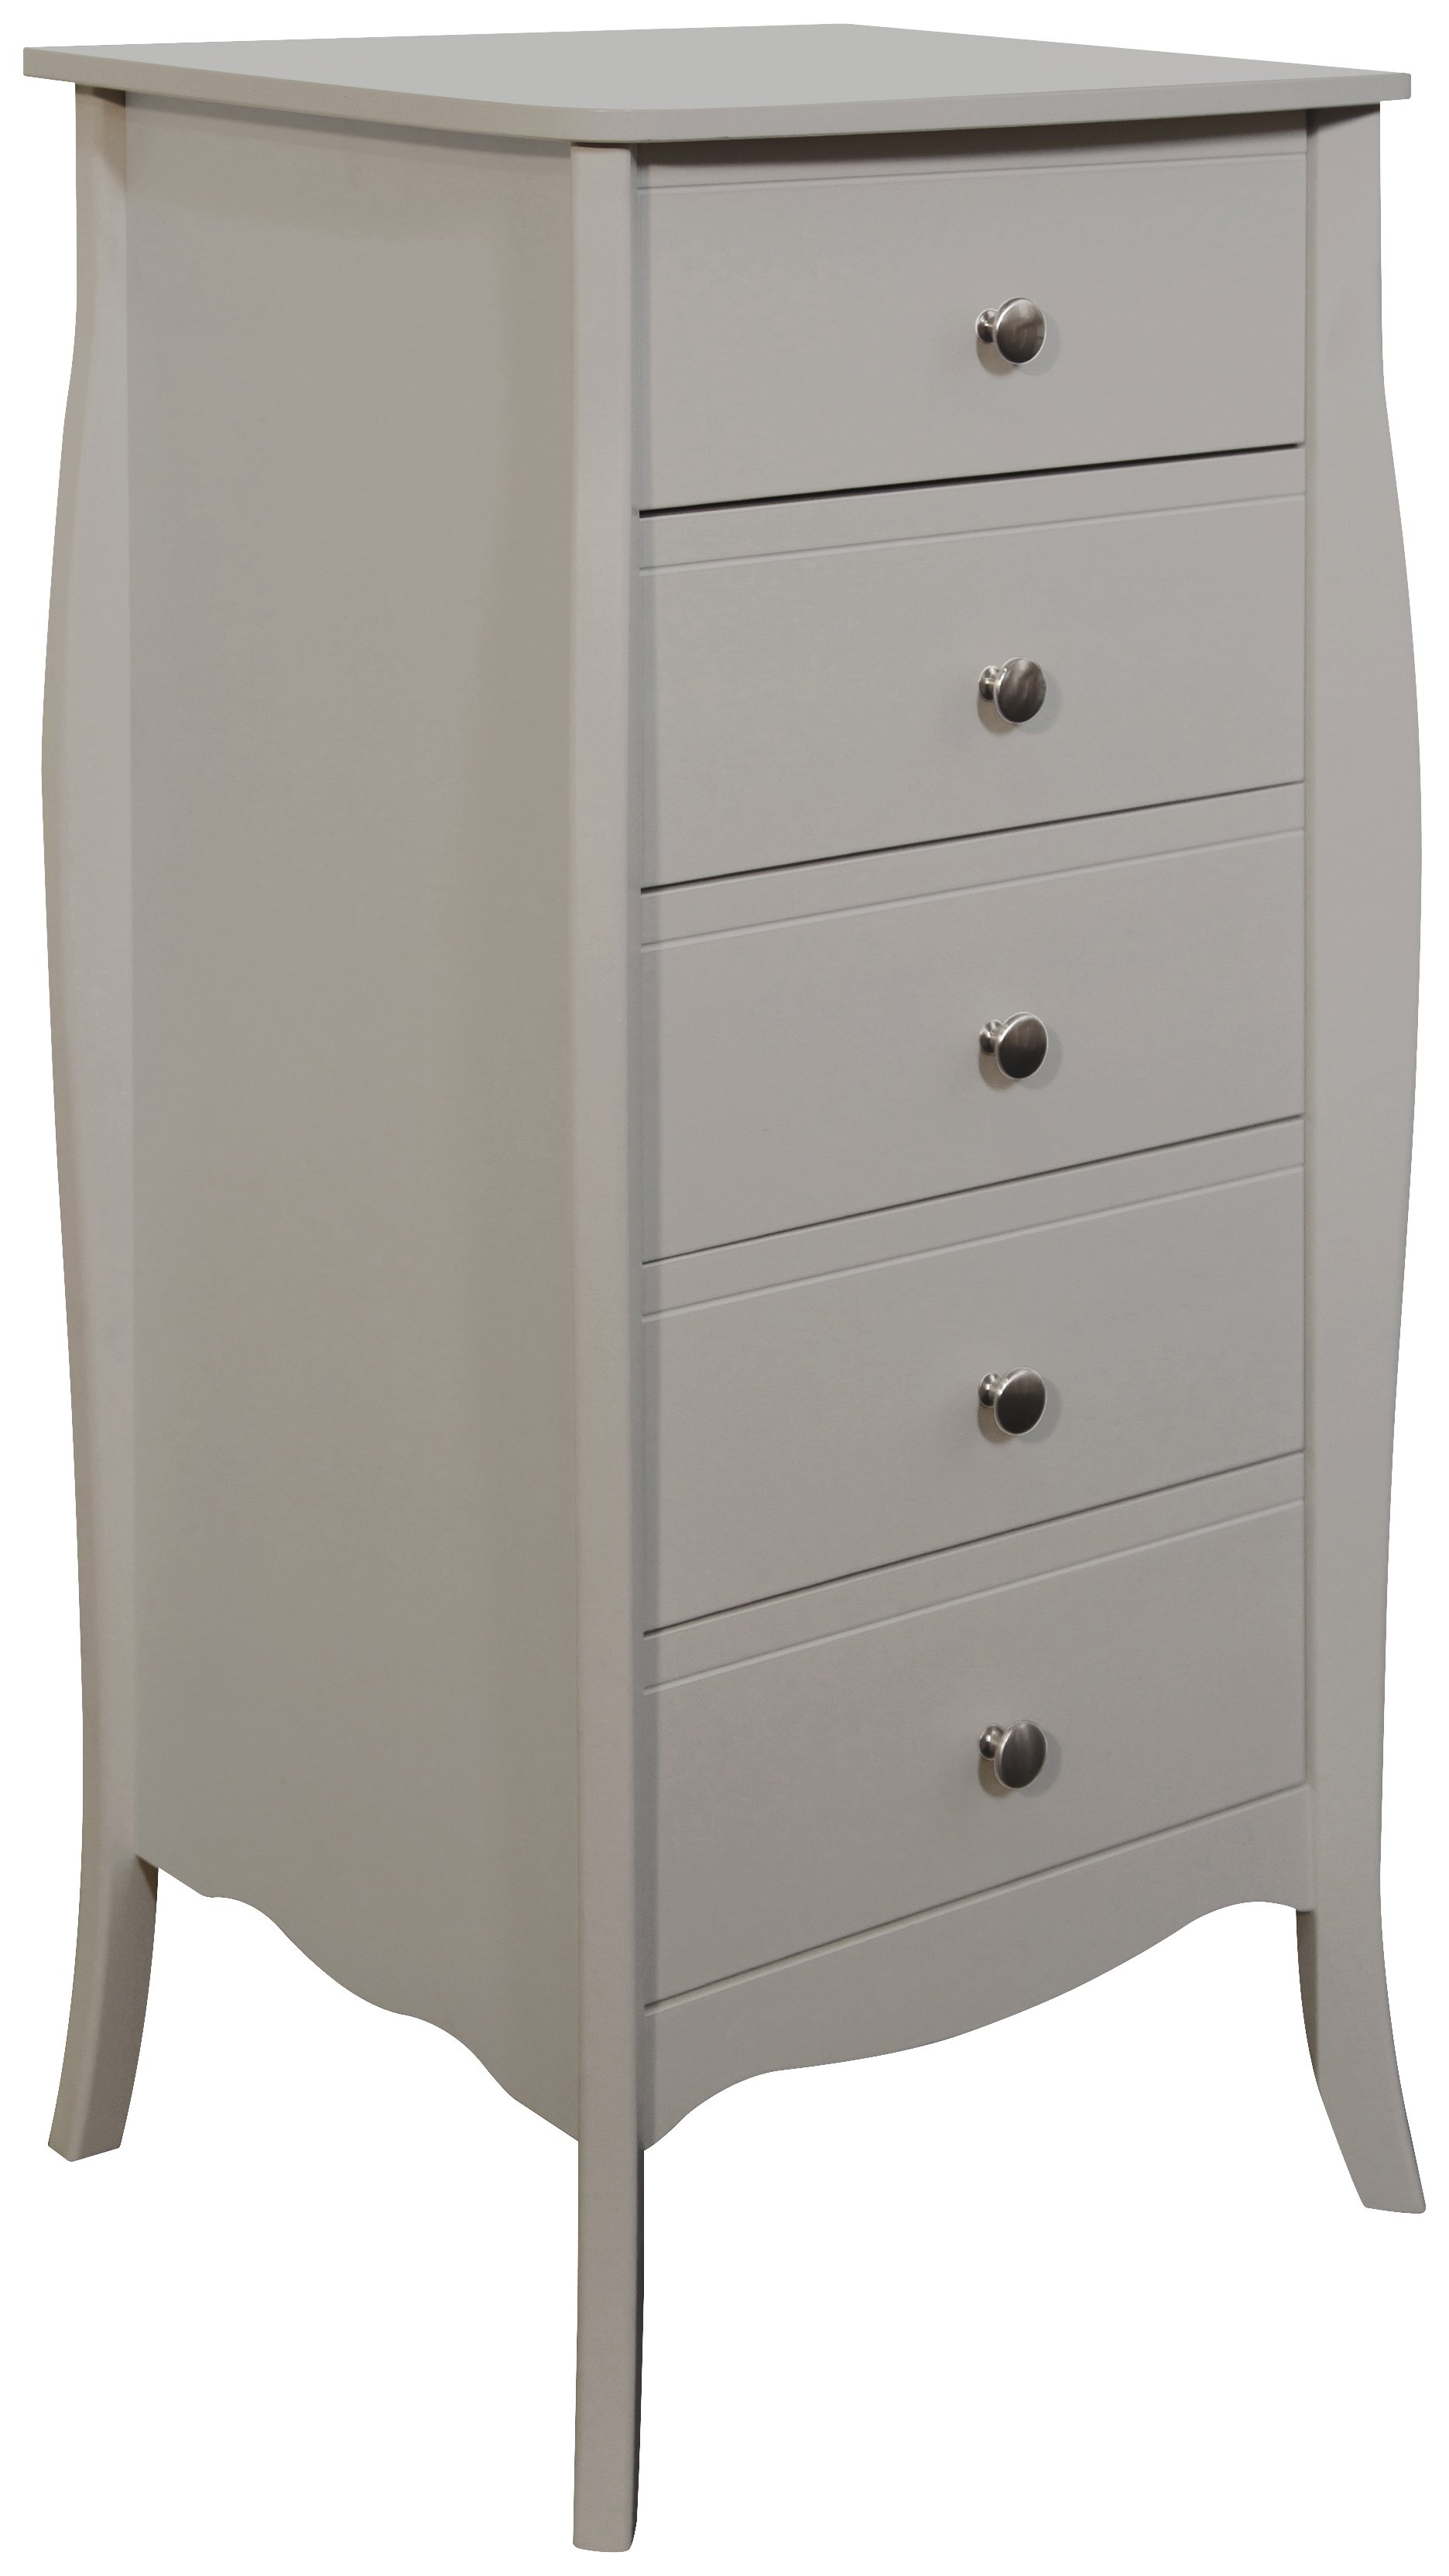 Argos Home Amelie 5 Drawer Narrow Chest of Drawers